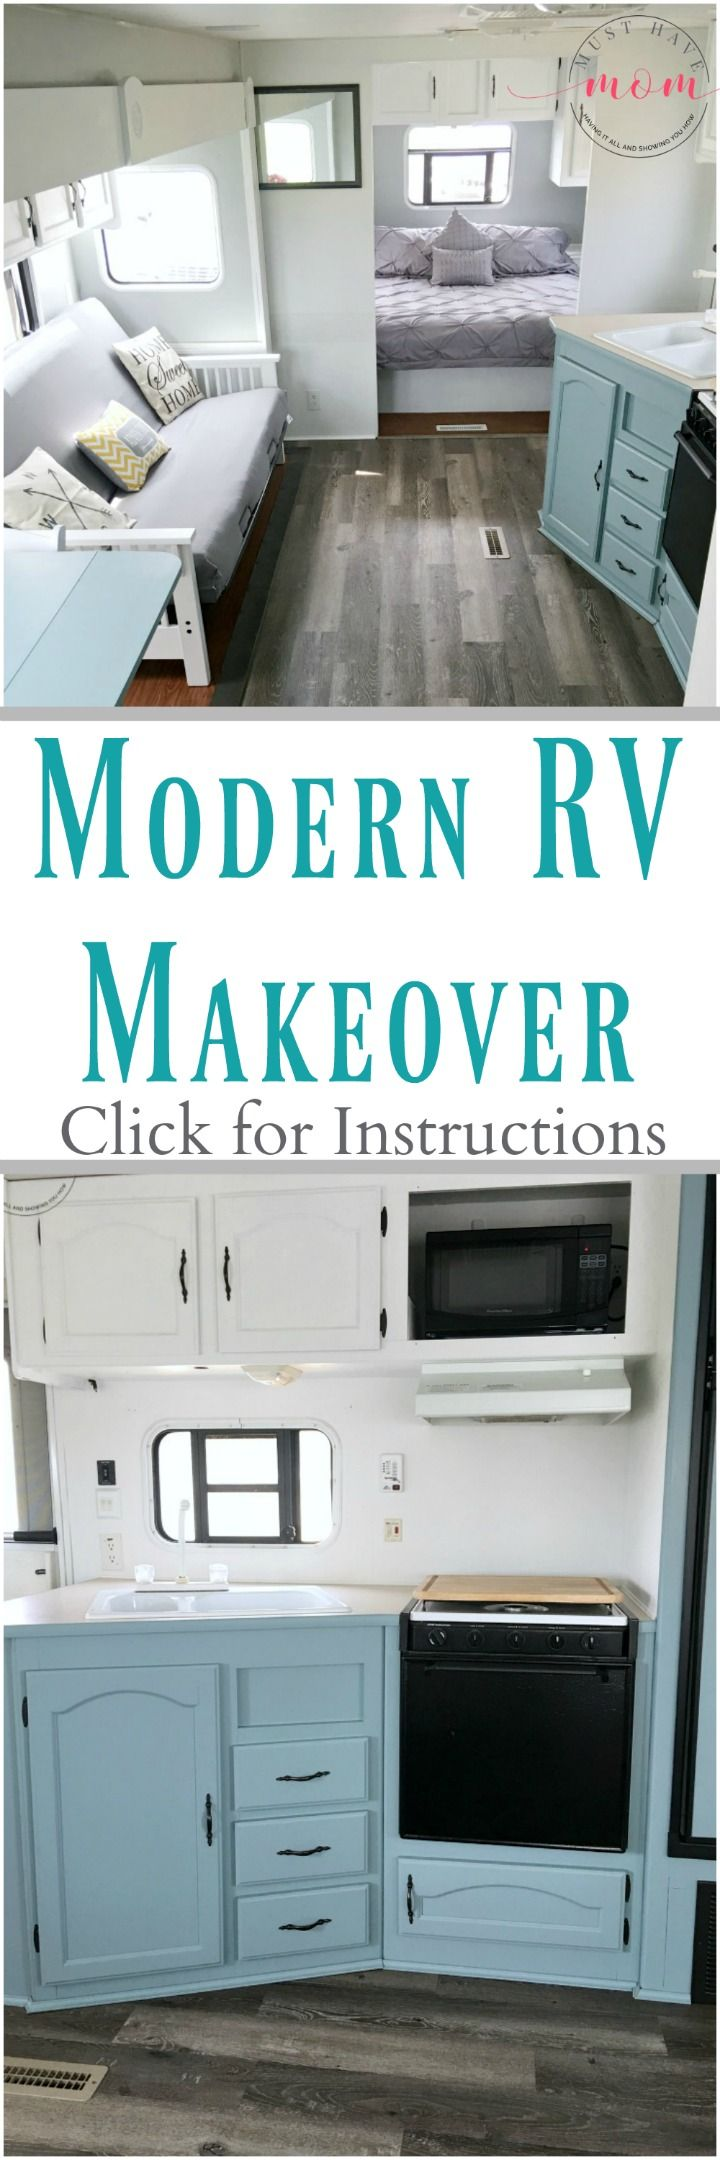 Rv: 25+ Best Ideas About Trailer Remodel On Pinterest